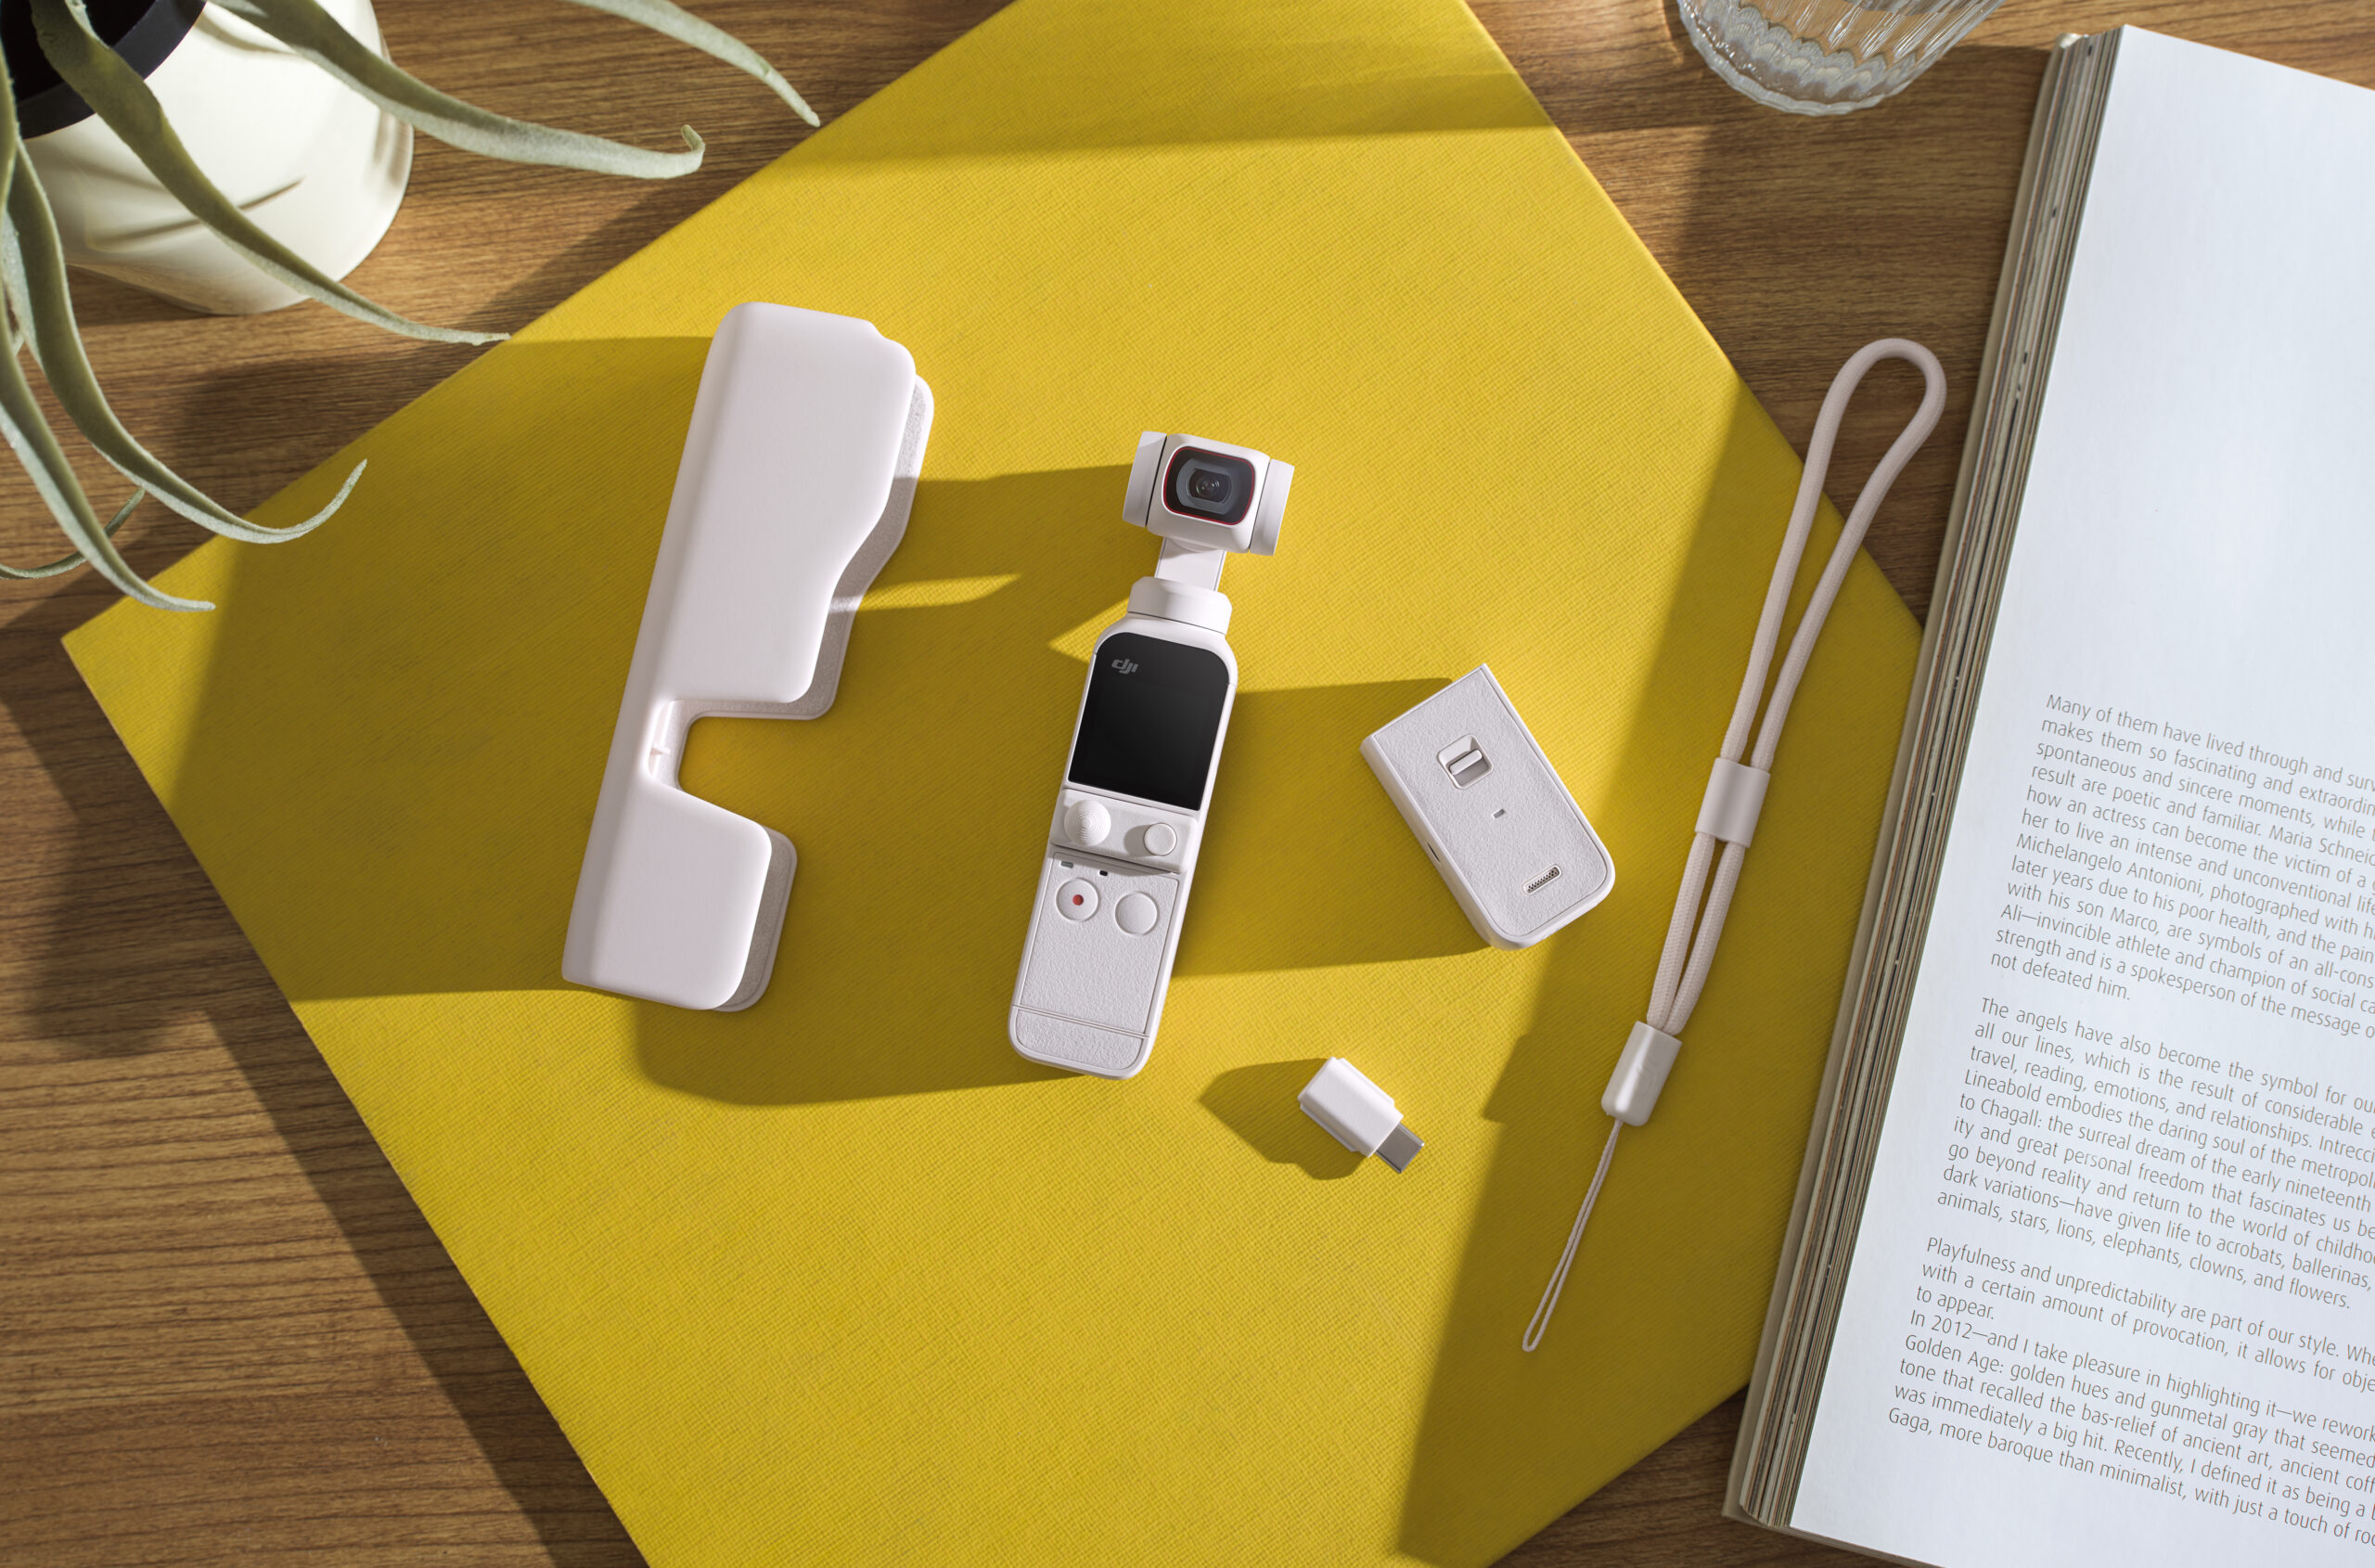 DJI Sunset White pocket 2: Powerful 4K Mini Camera and Updated Features 20